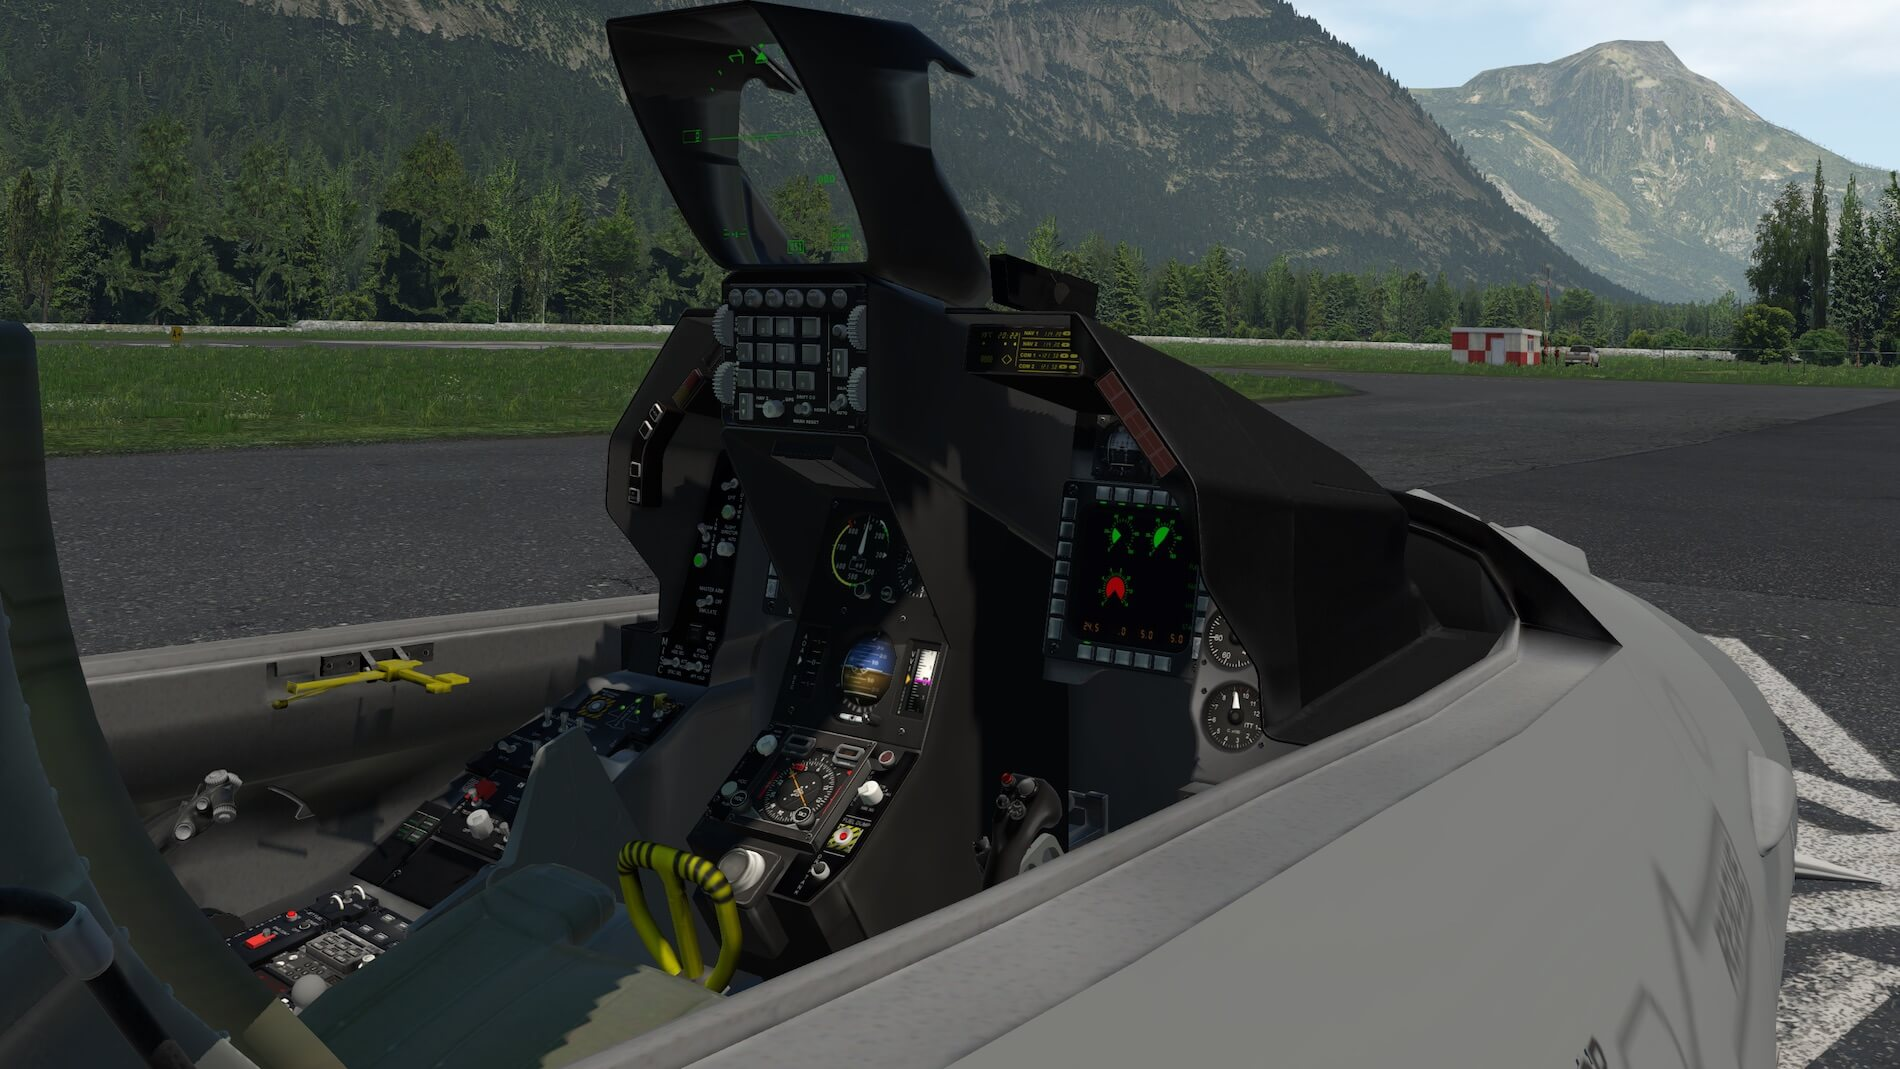 JCS F16 Fighter | X-Plained, the Source for All Your X-Plane